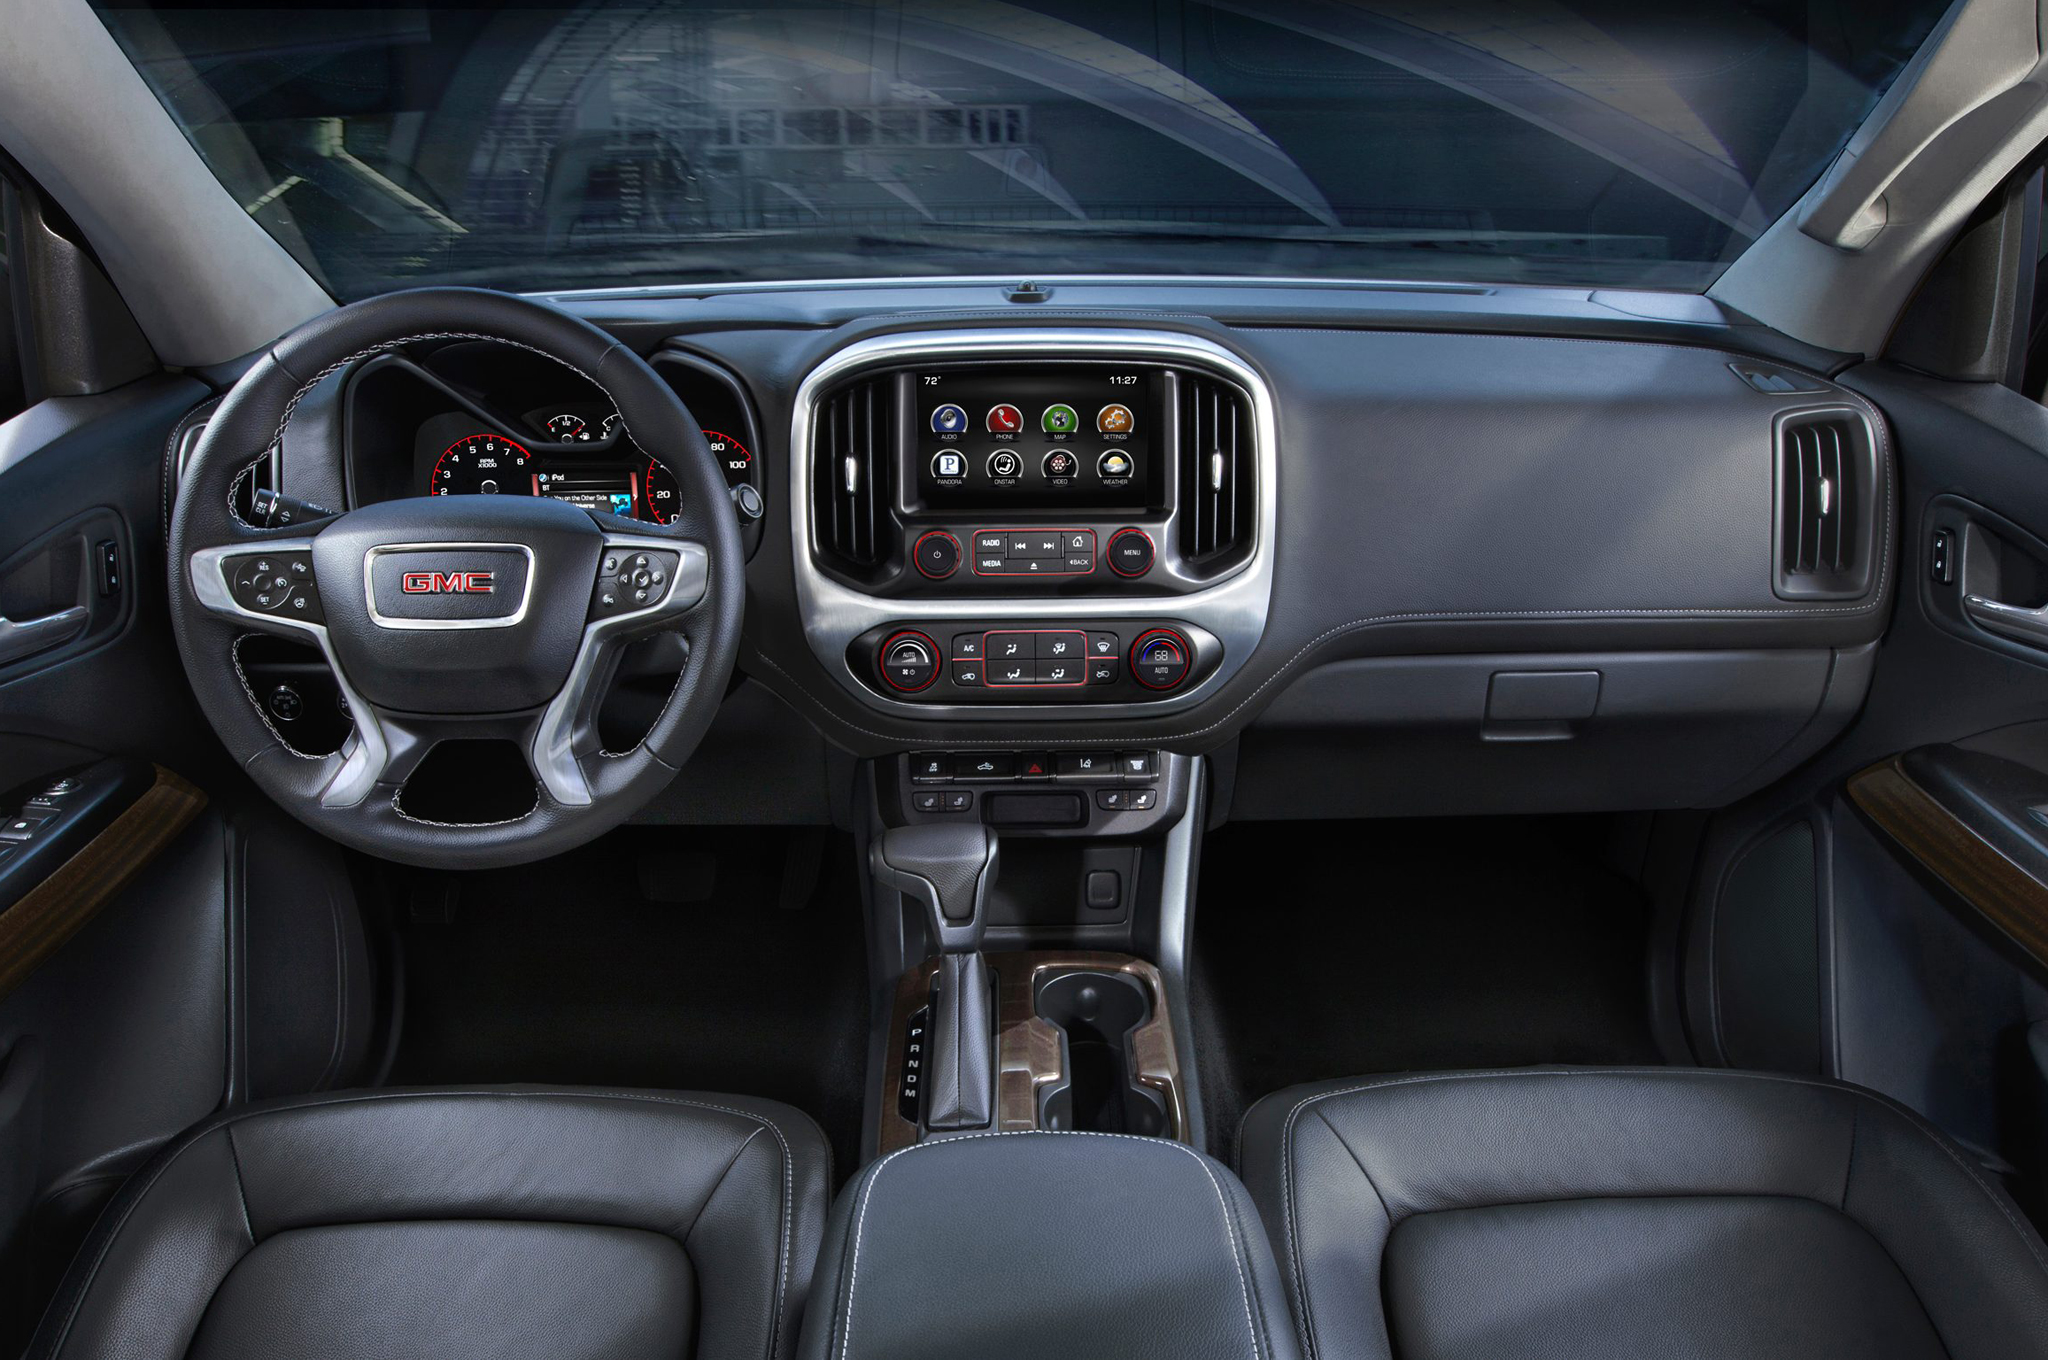 2015 GMC Canyon Dashboard Head Unit and Cockpit